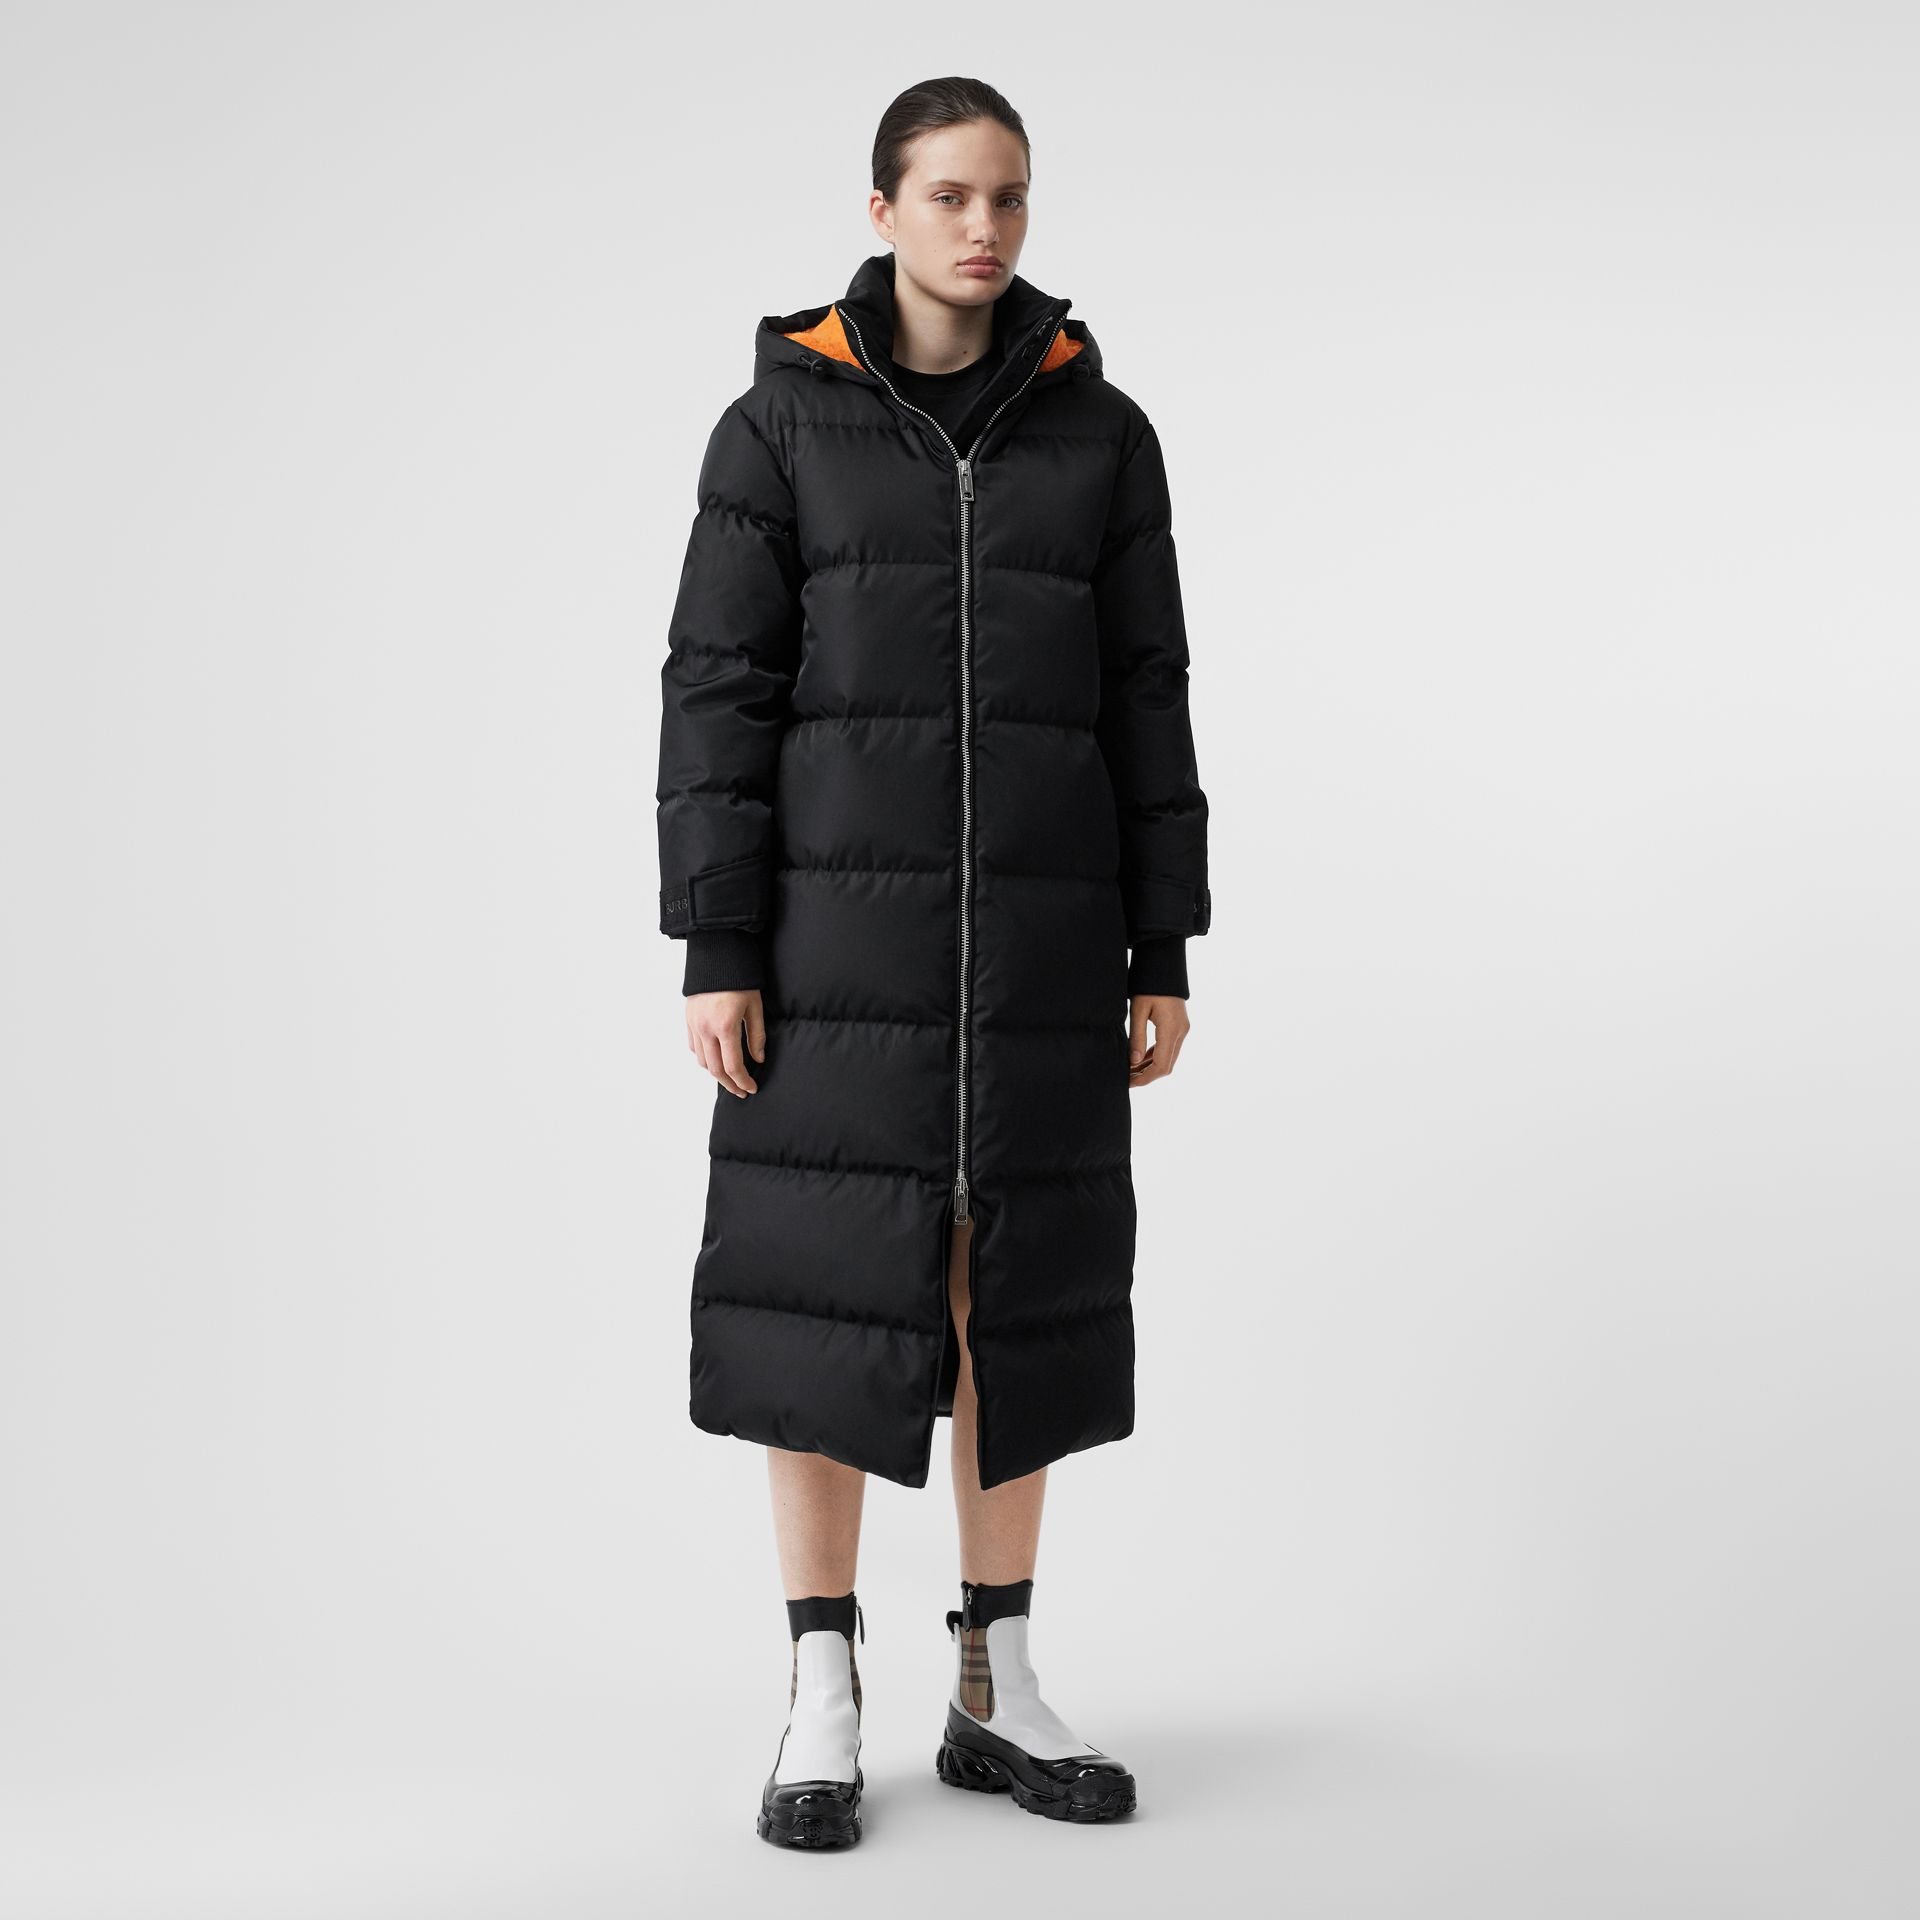 Logo Detail ECONYL® Puffer Coat in Black/orange - Women | Burberry Australia - gallery image 6